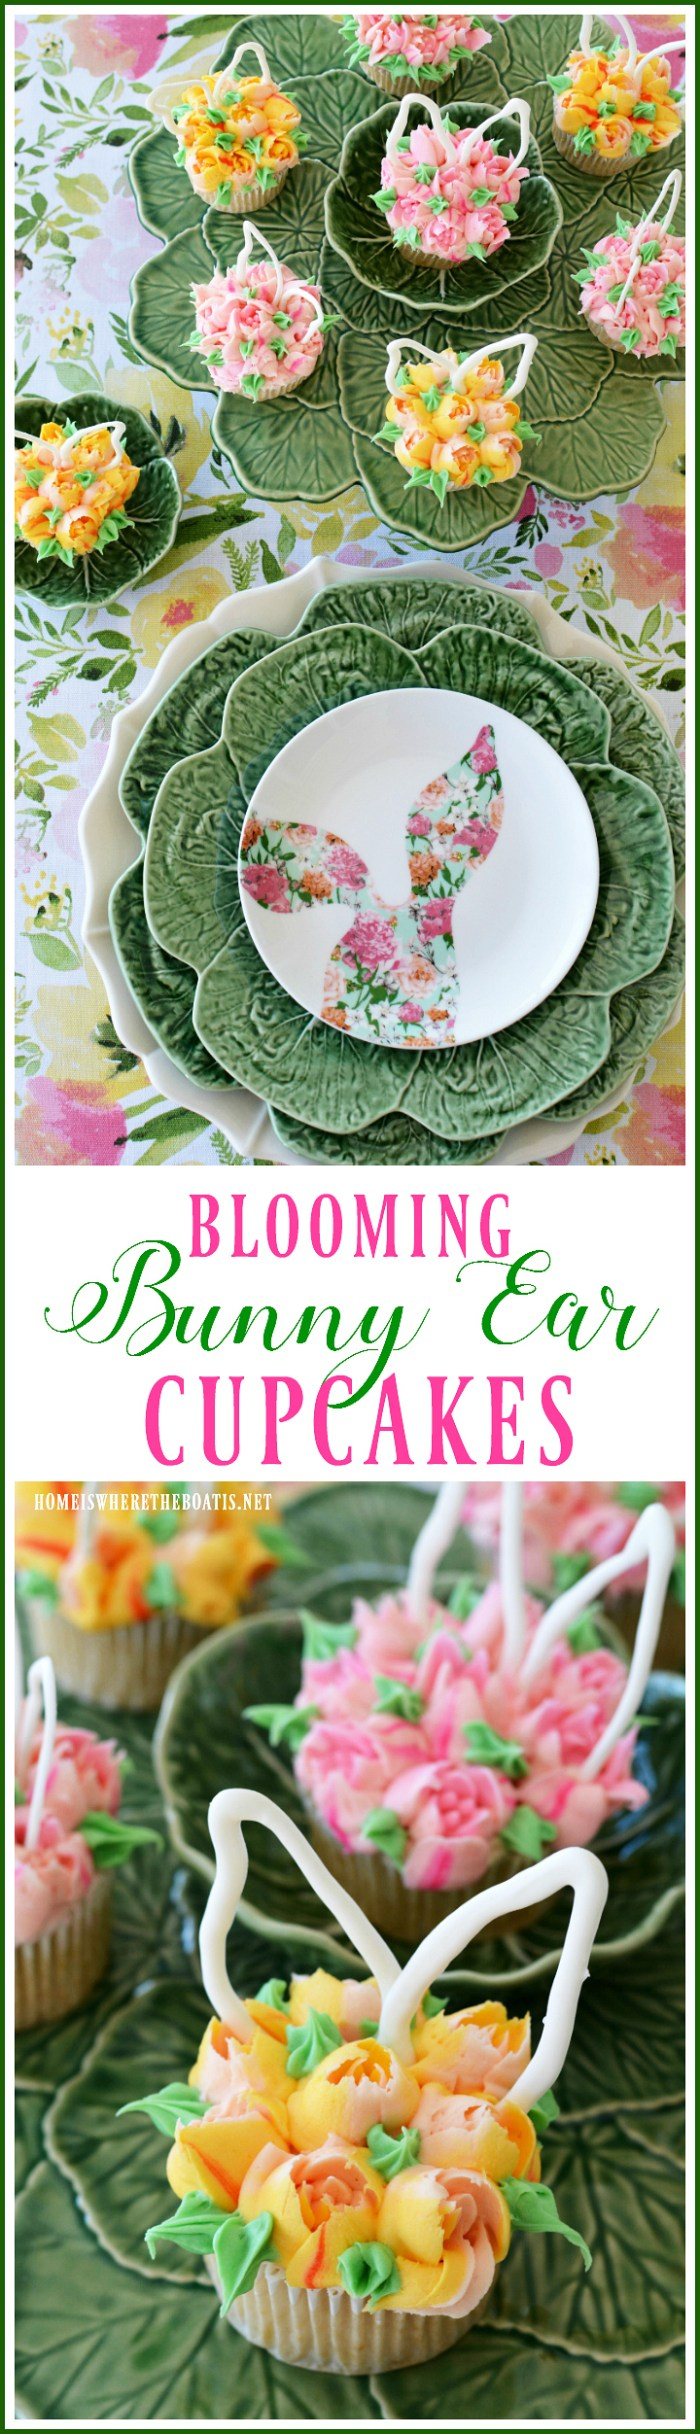 Blooming Bunny Ear Cupcakes | ©homeiswheretheboatis.net #easter #cupcakes #bunny